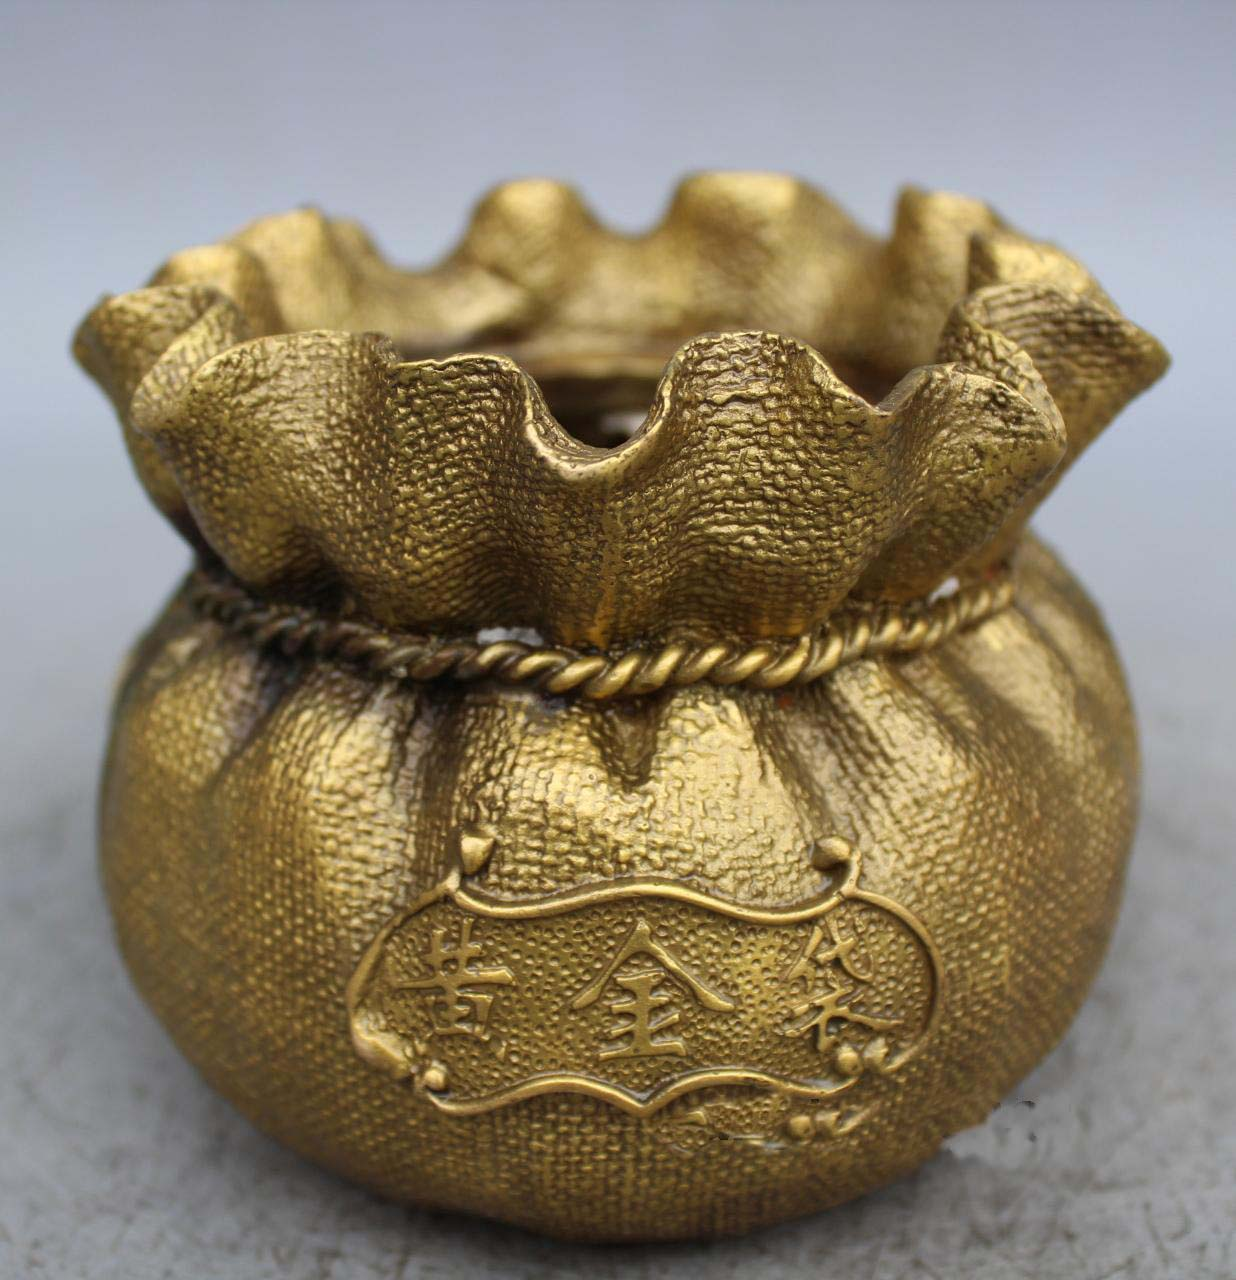 5.5Chinese brass wealth Yellow gold Bag money coin Lucky Bag statue|Statues & Sculptures| |  - title=